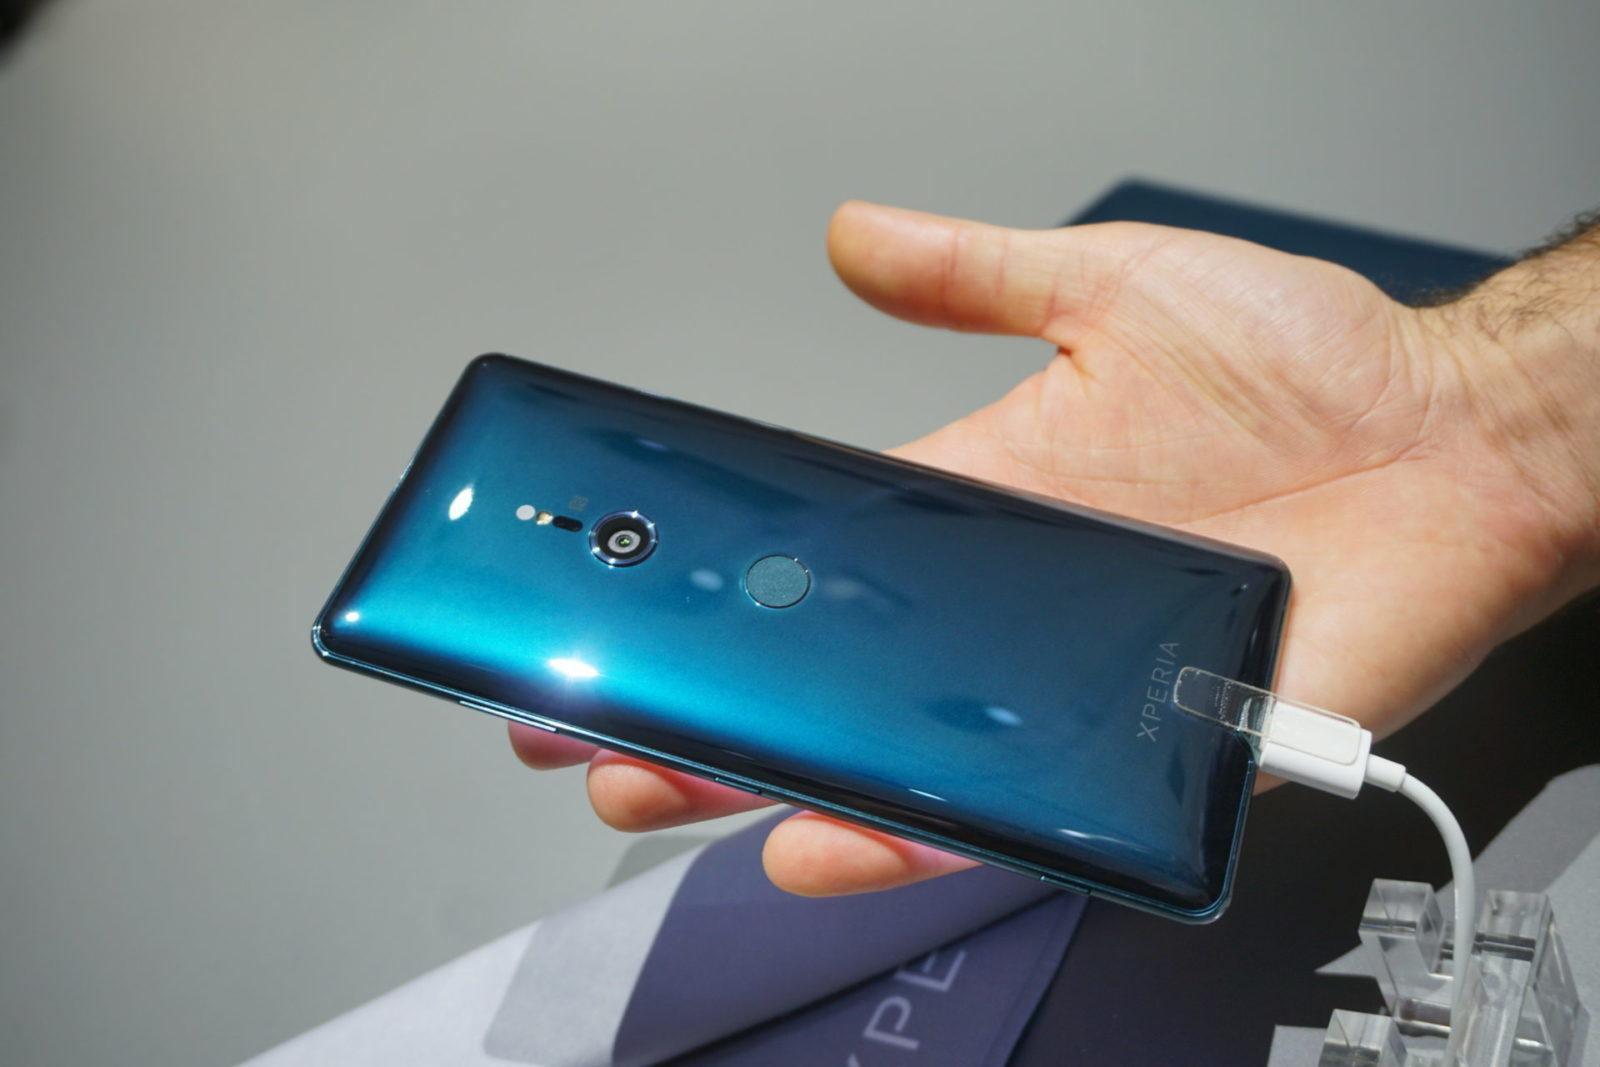 IFA 2018 | Primo hands on con Xperia XZ3 | Evosmart.it